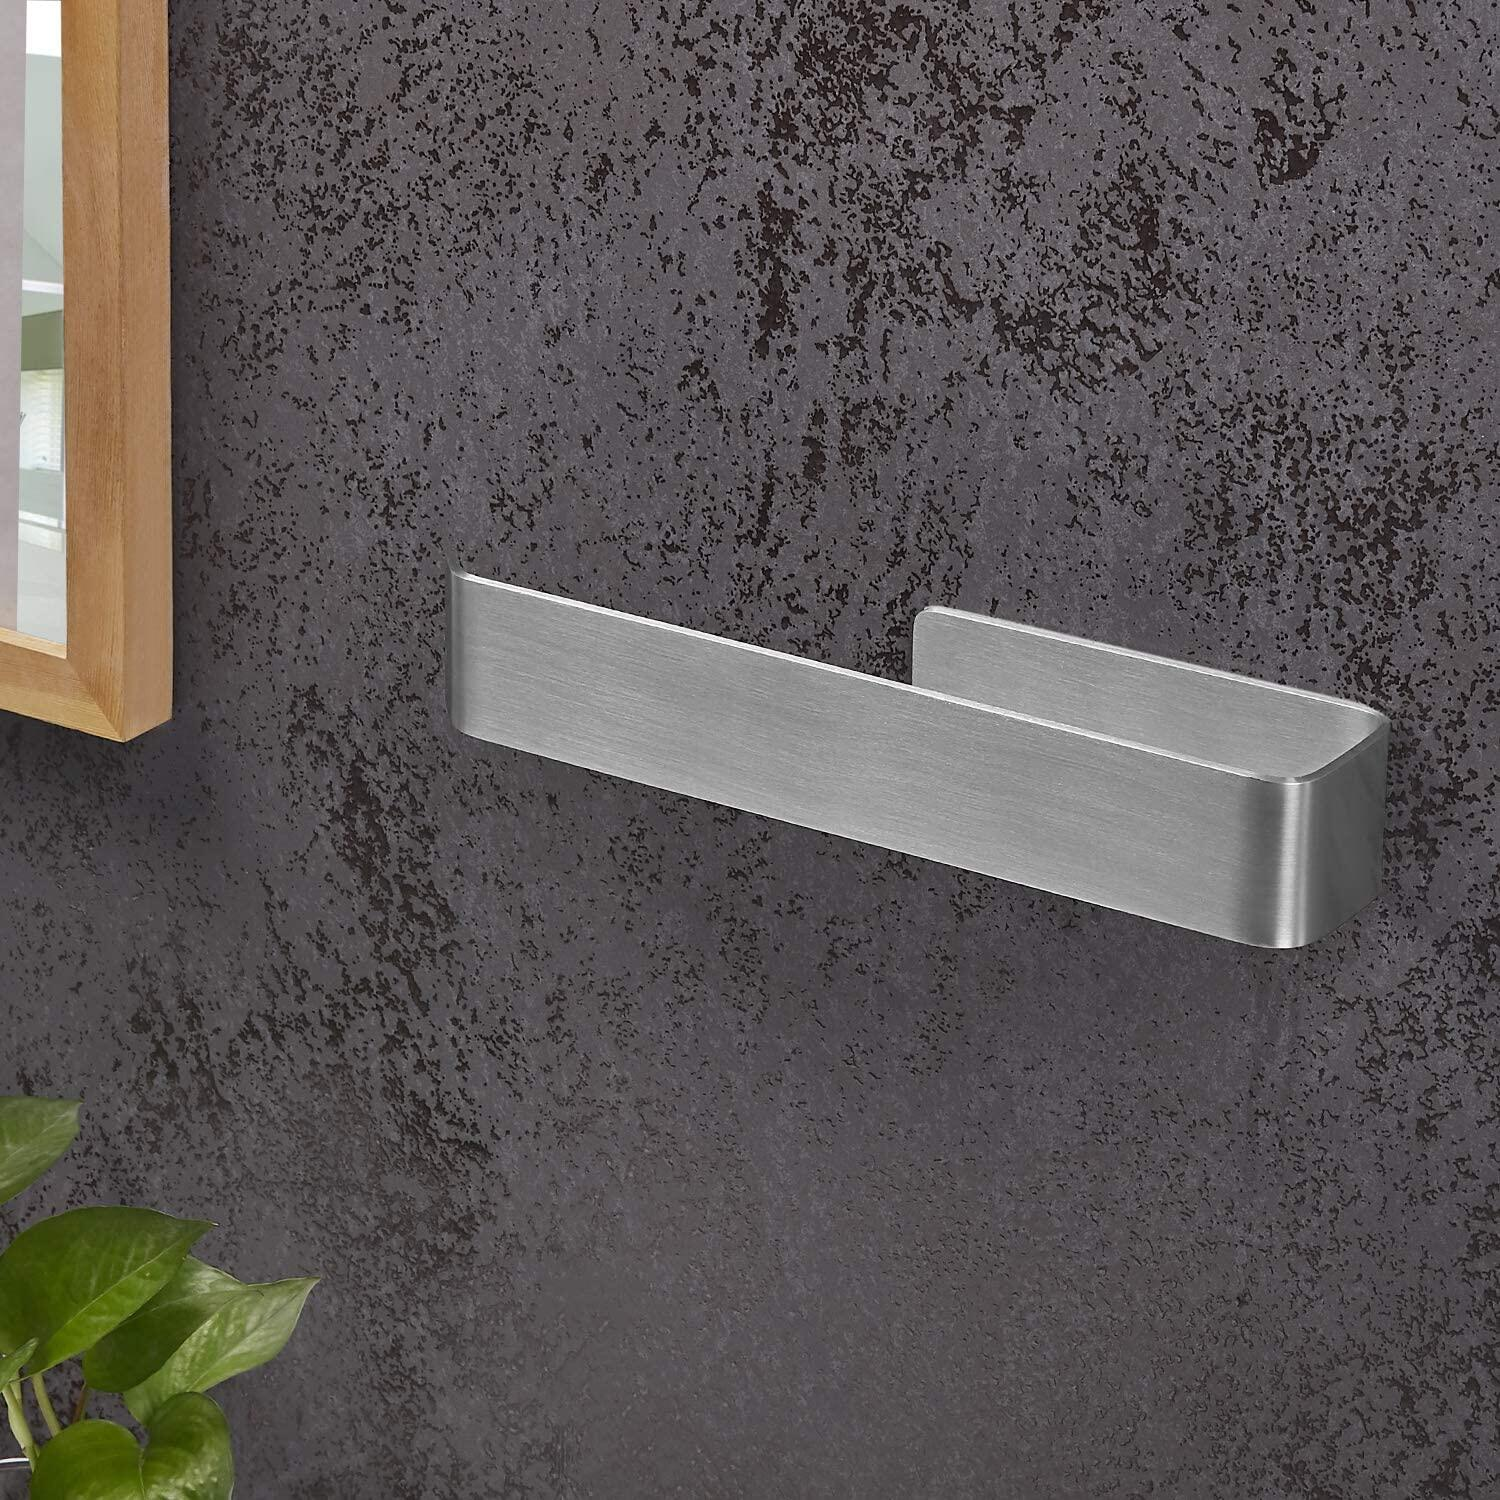 Towel holder without drilling, Stainless steel towel holders Self-adhesive towel holder Bathroom Gluing instead of drilling Elegant chrome Consists of stainless steel for shower towels, bathrooms and kitchens. Never drill again Towel holder without drilling Stainless steel towel holders Self-adhesive towel holder Bathroom Gluing instead of drilling Elegant chrome Consists of stainless steel for shower towels, bathrooms and kitchens. Never drill again towel holder